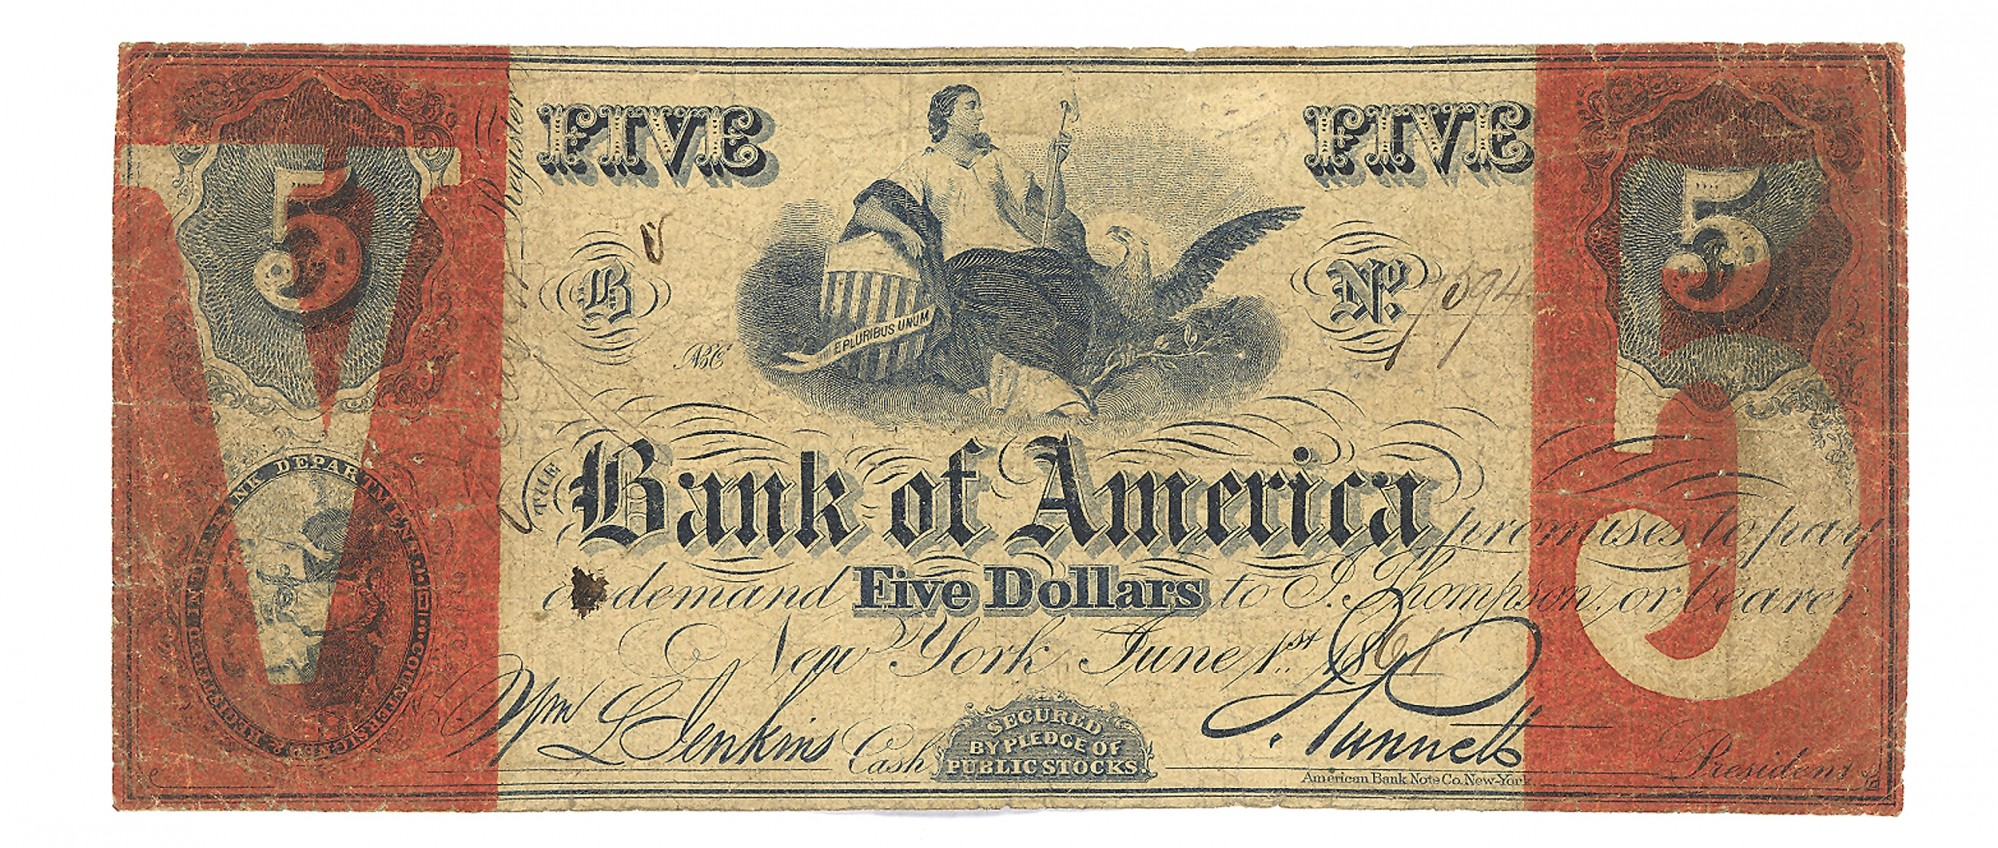 THE BANK OF AMERICA, NEW YORK CITY, NEW YORK $5 NOTE